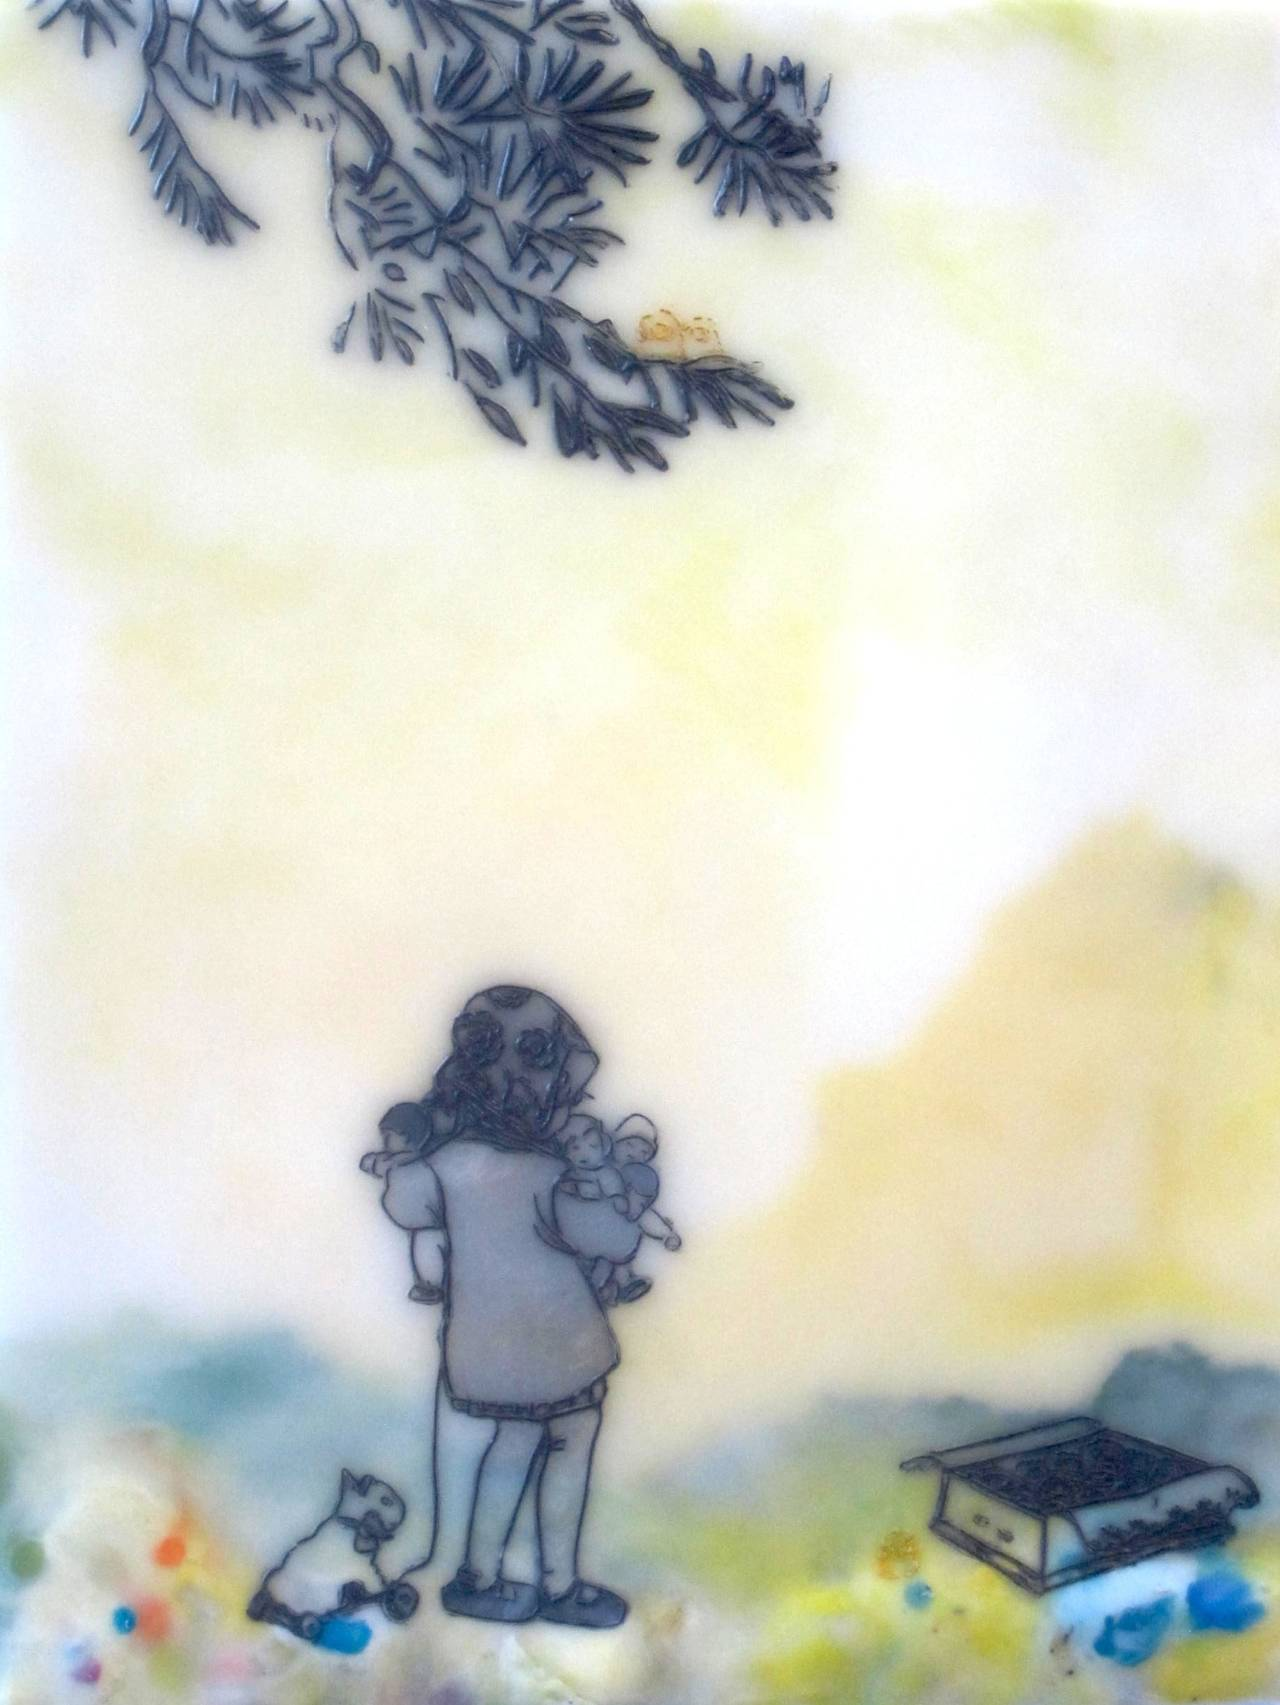 Chocolate-Chocolate-ChiKuLek, Encaustic Landscape Painting of Child with Toys